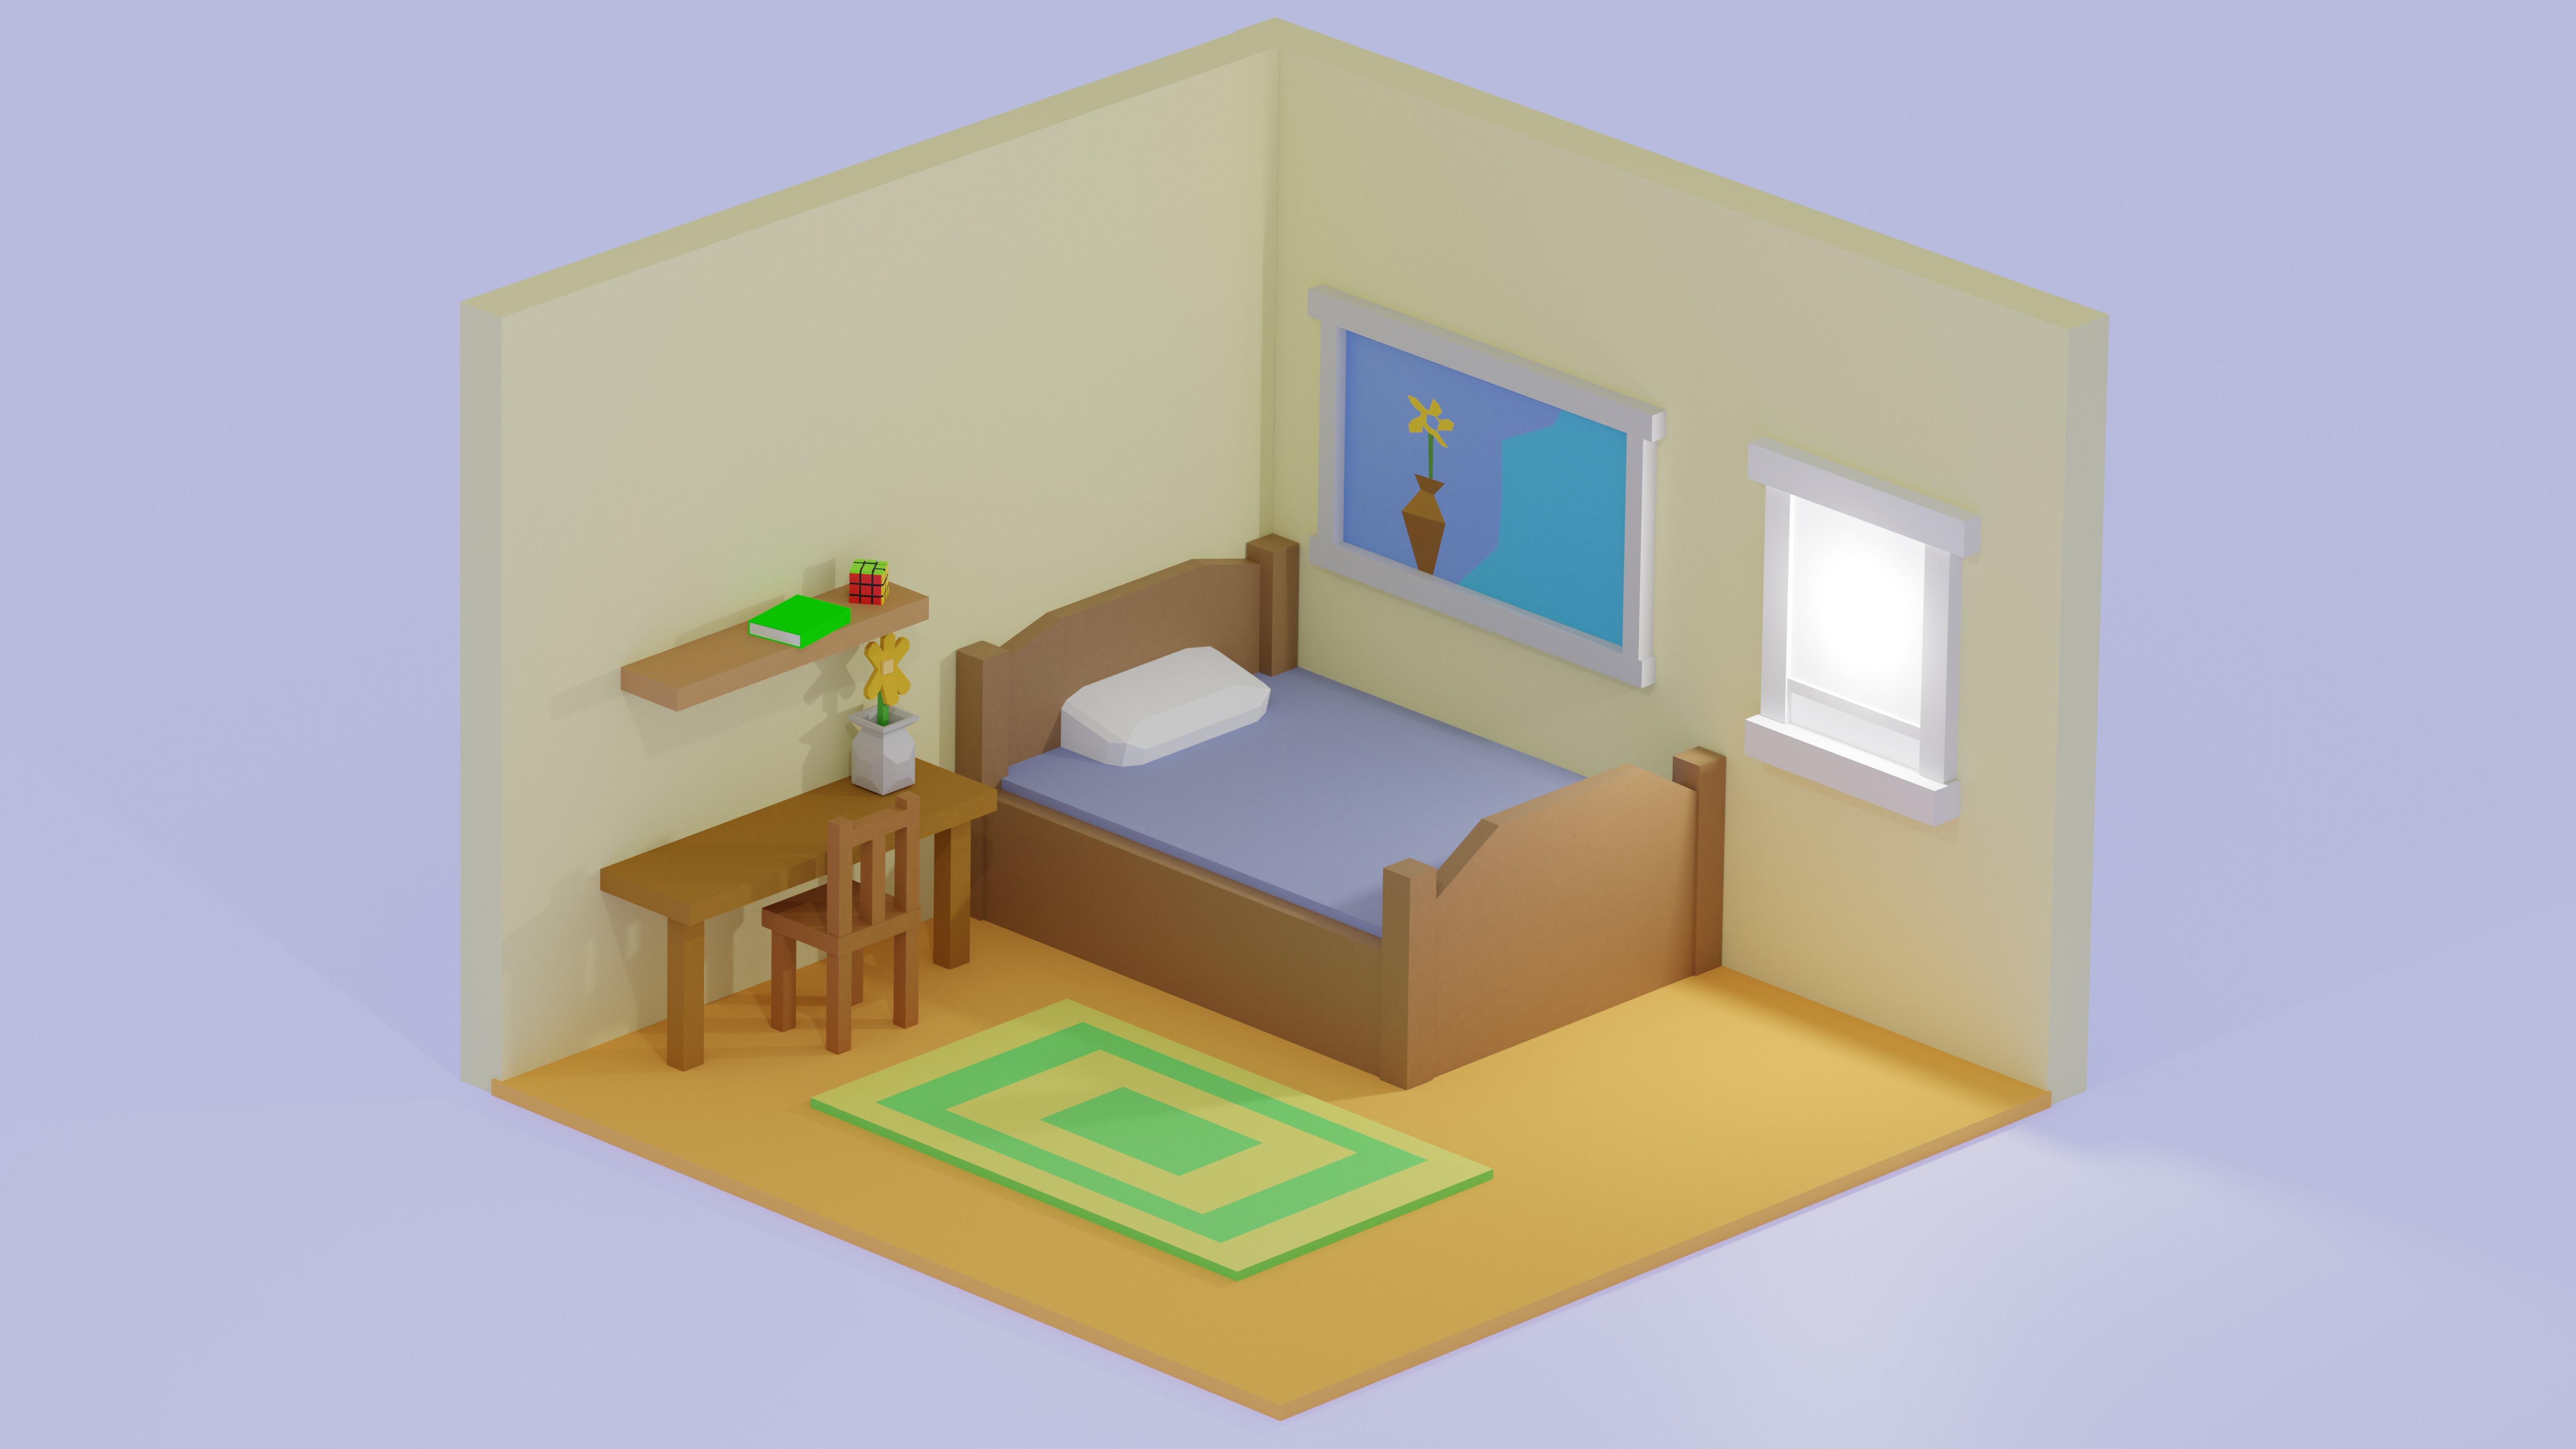 Low Poly Bedroom preview image 1